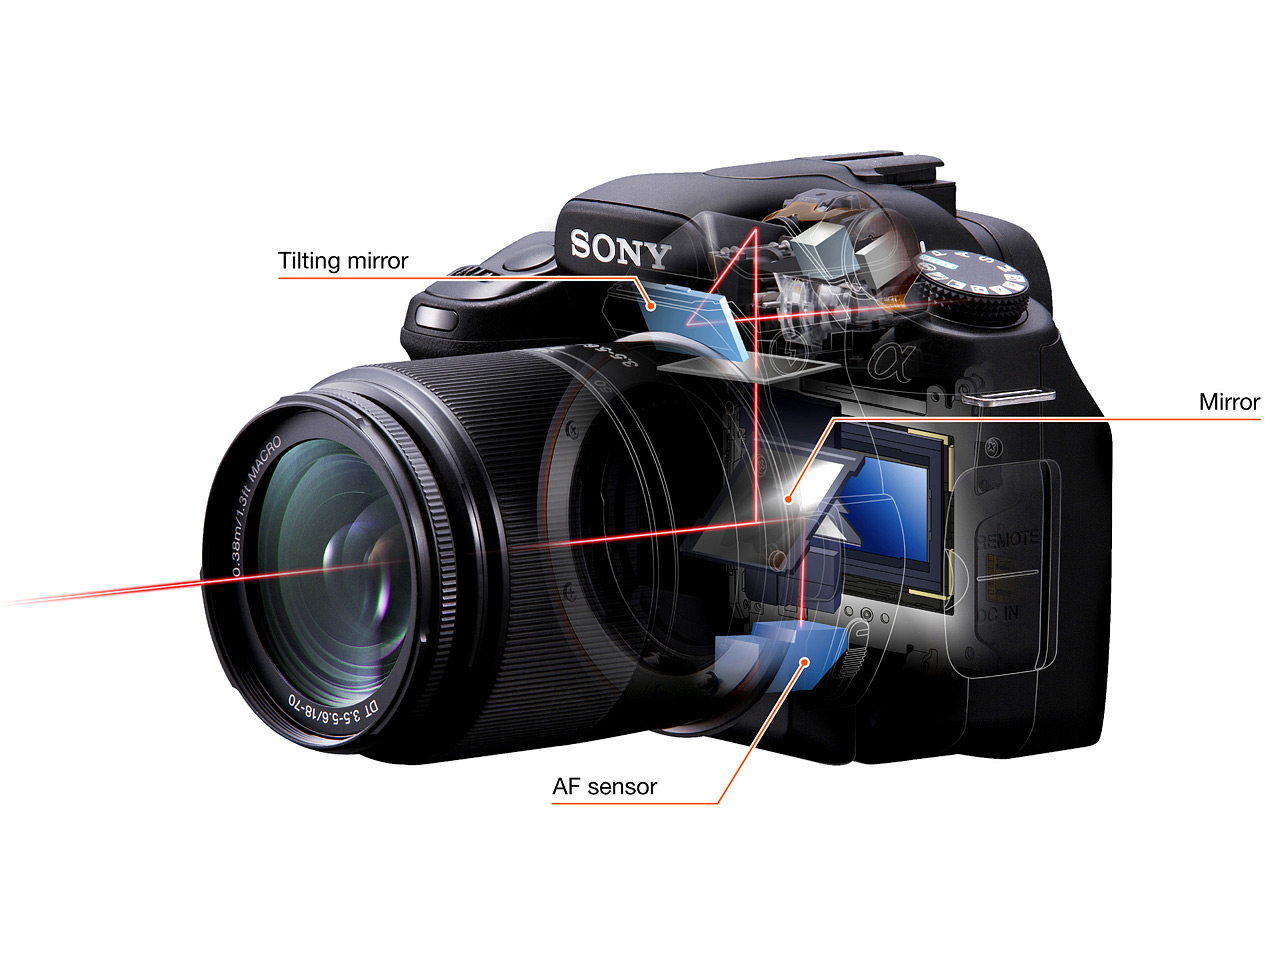 sony alpha dslr a350 review digital photography review rh dpreview com sony alpha a350 manual sony dslr-a350 camera manual